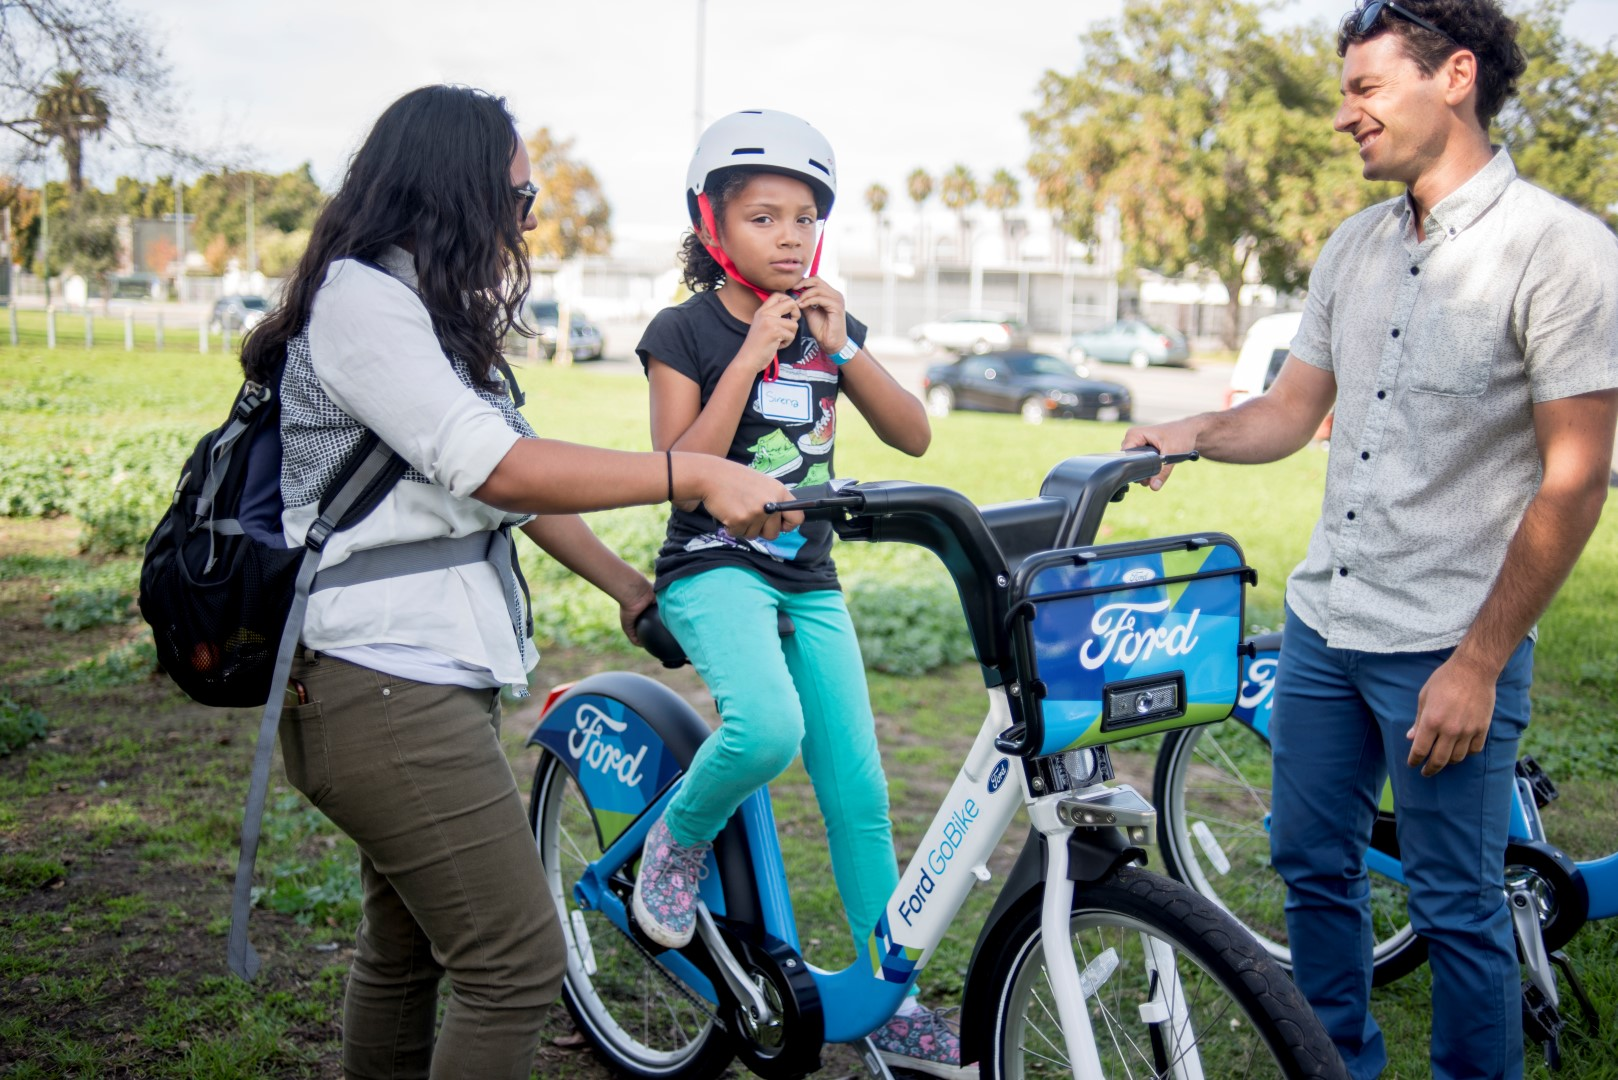 Image: a young girl tries out a Ford Go Bike. Photo: Pamela Palma Photography